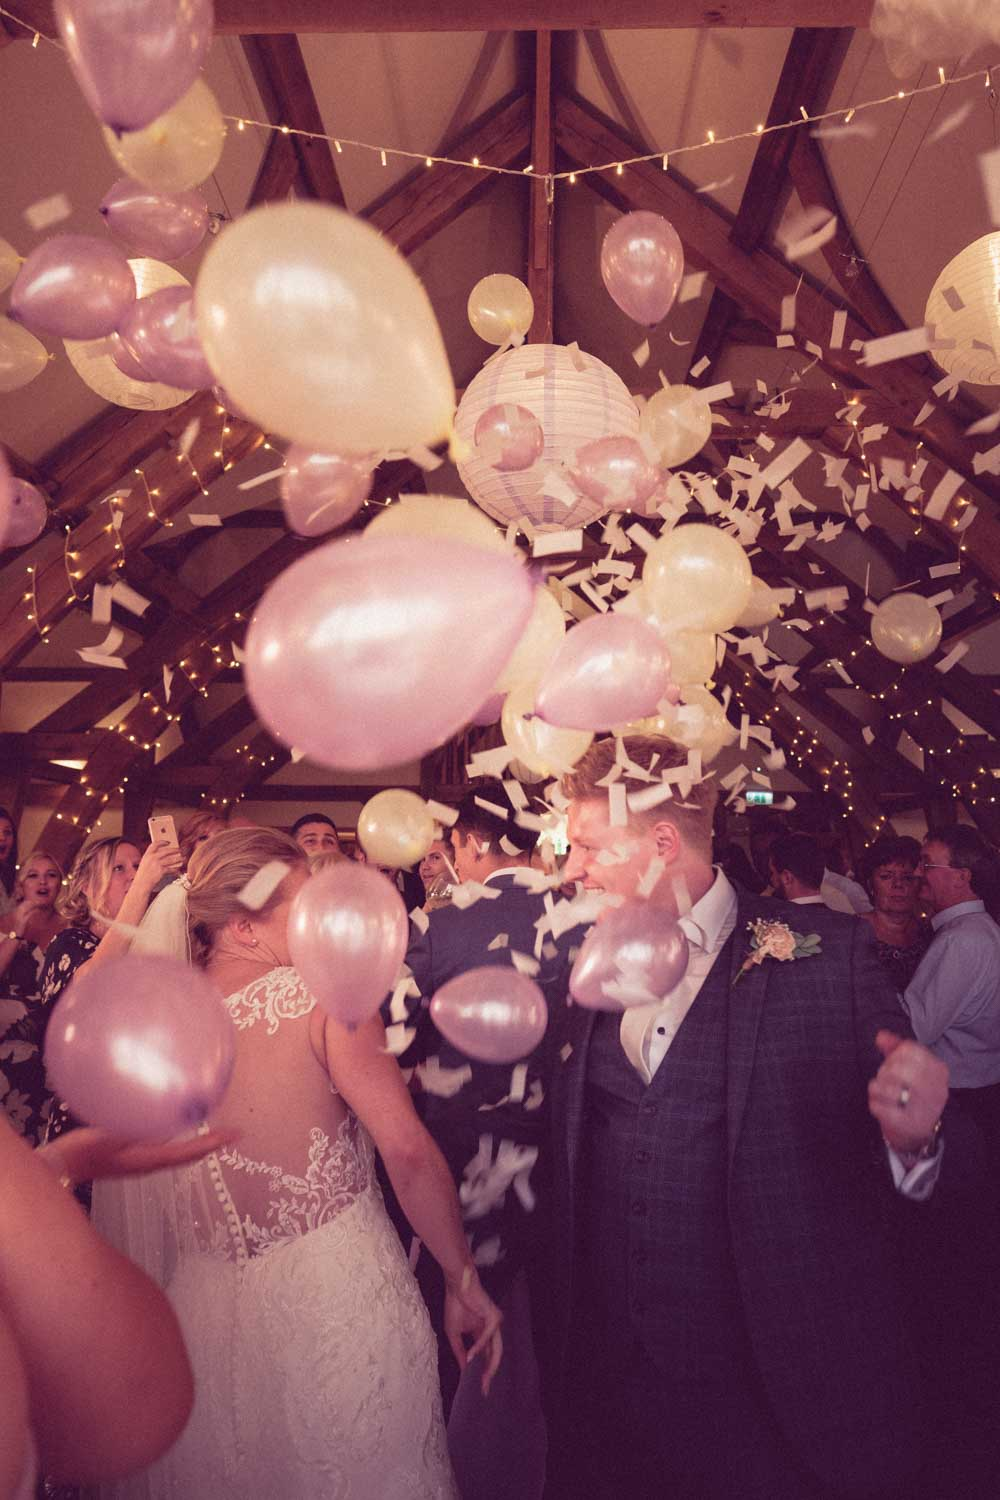 Balloon pops above newlyweds first dance dropping hundreds of smaller balloons on them